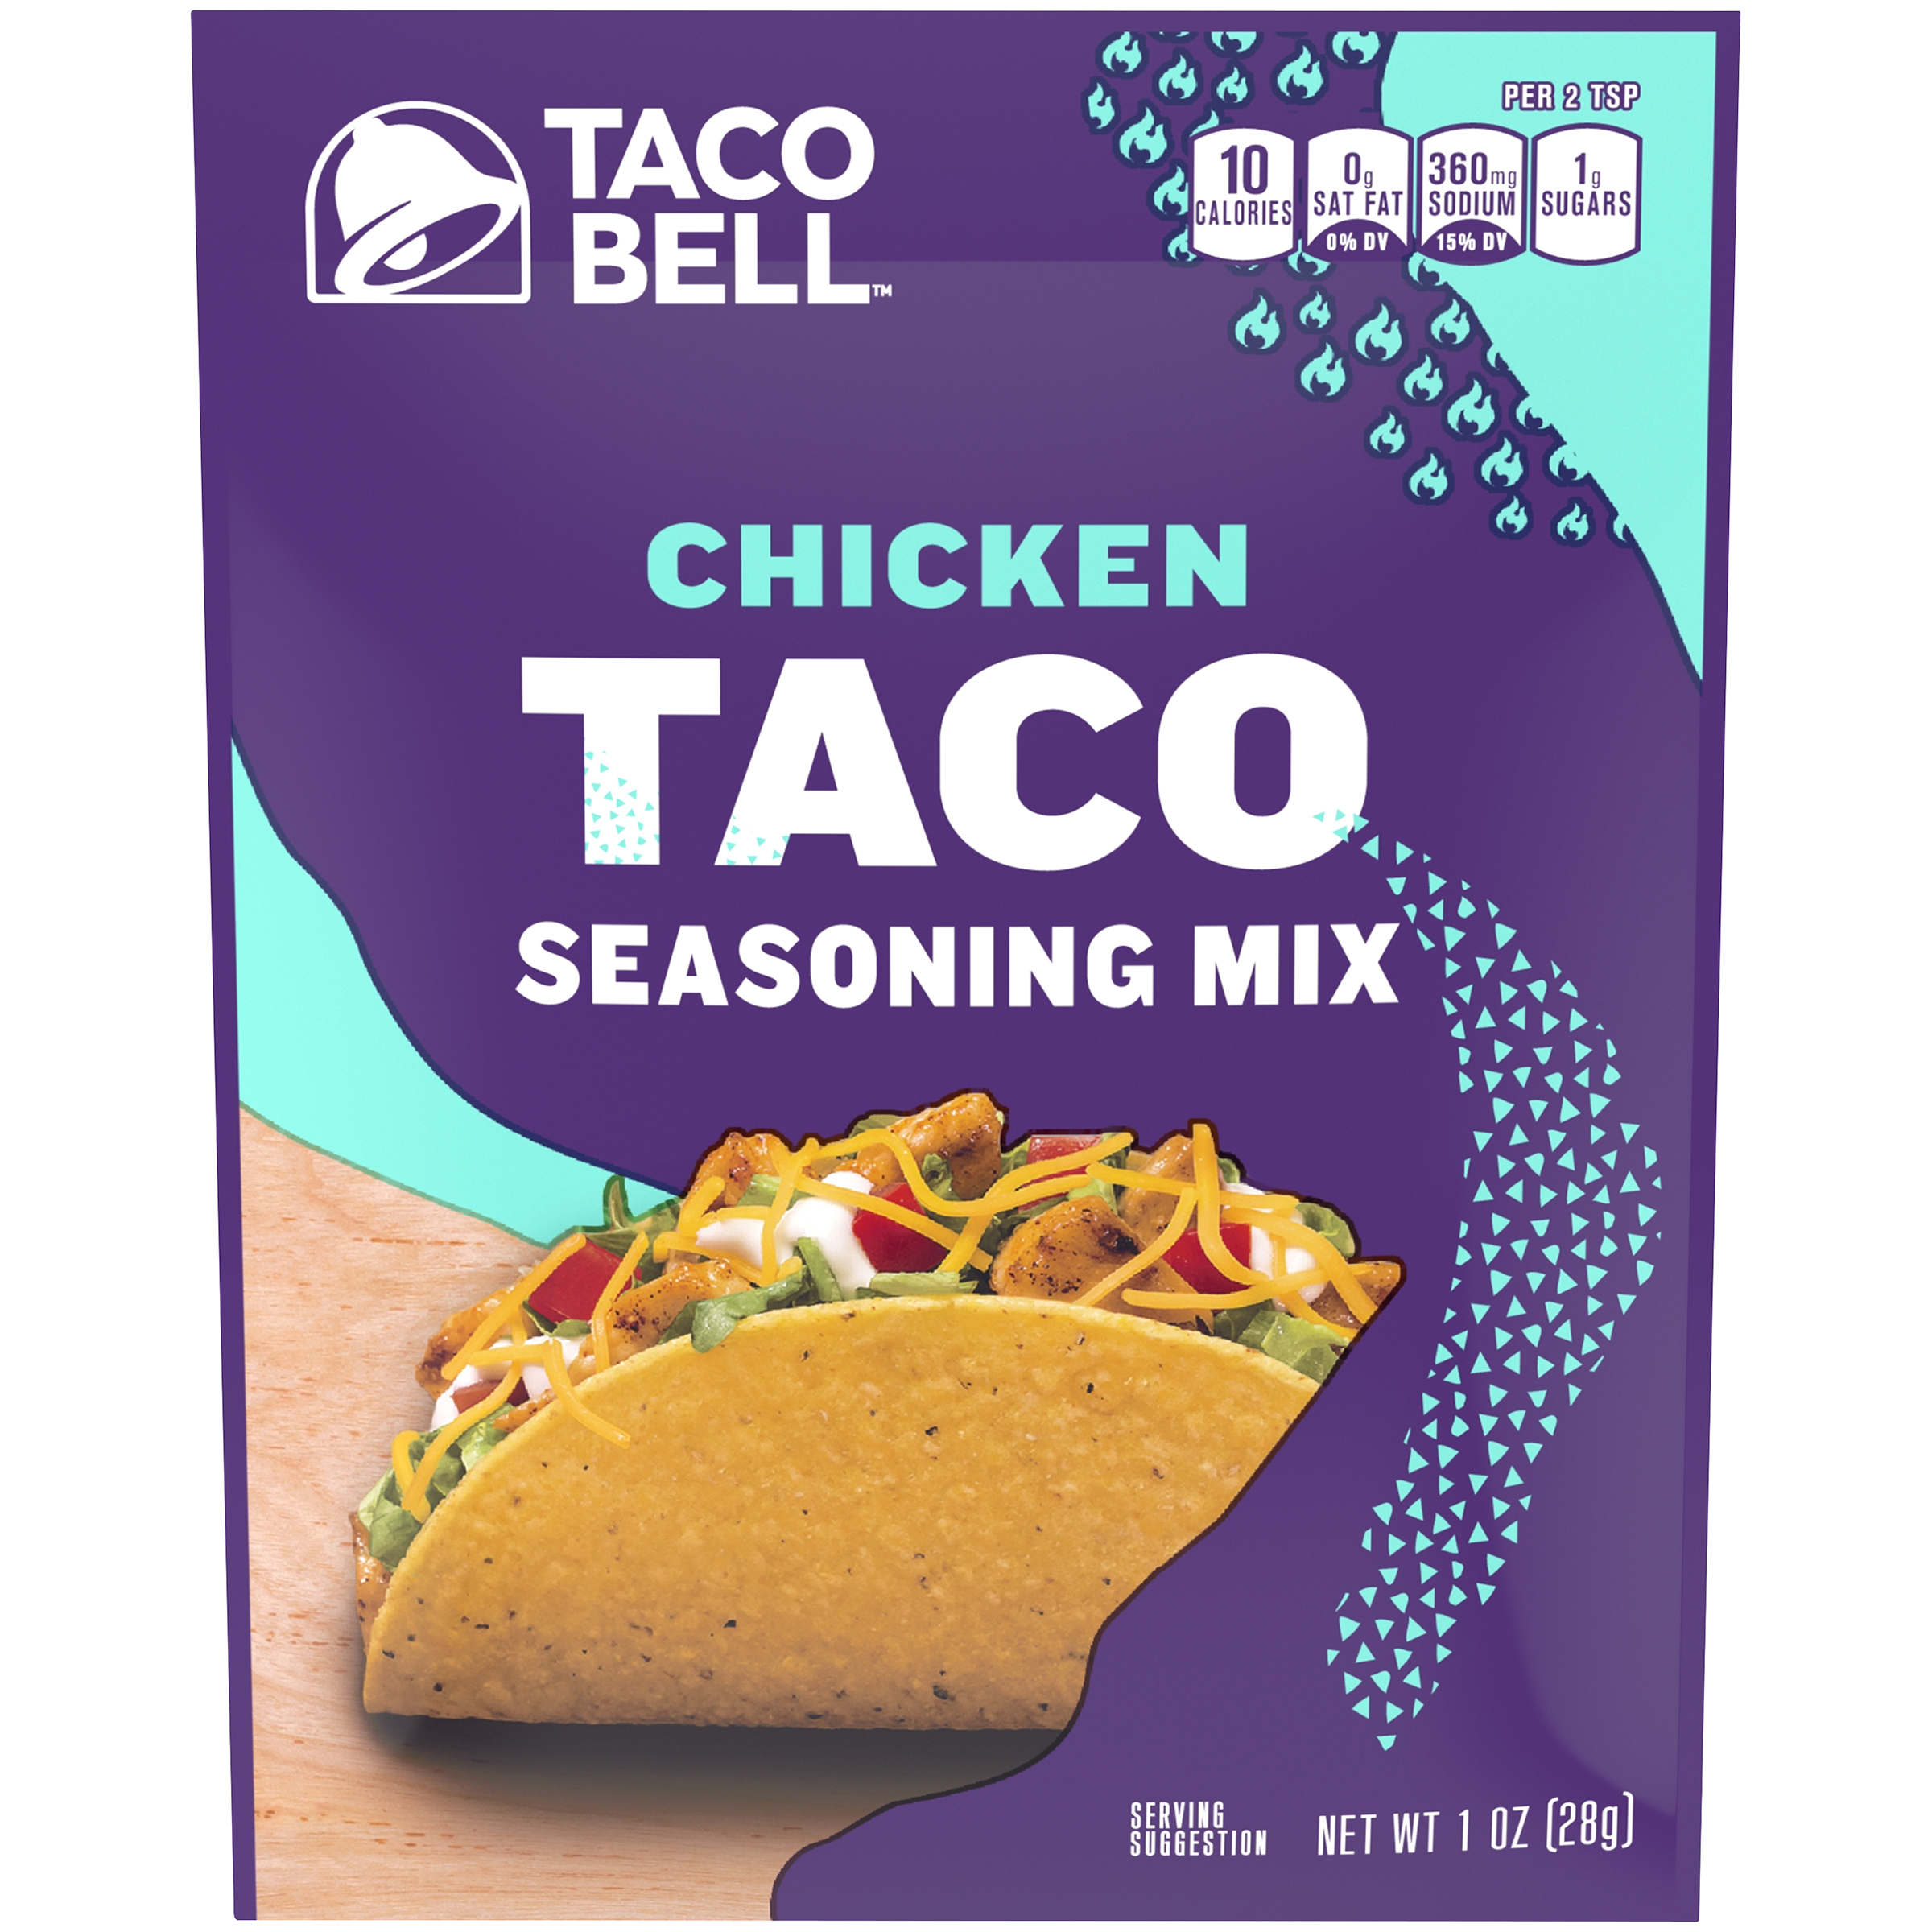 Taco Bell Chicken Taco Seasoning Mix 1 oz. Packet